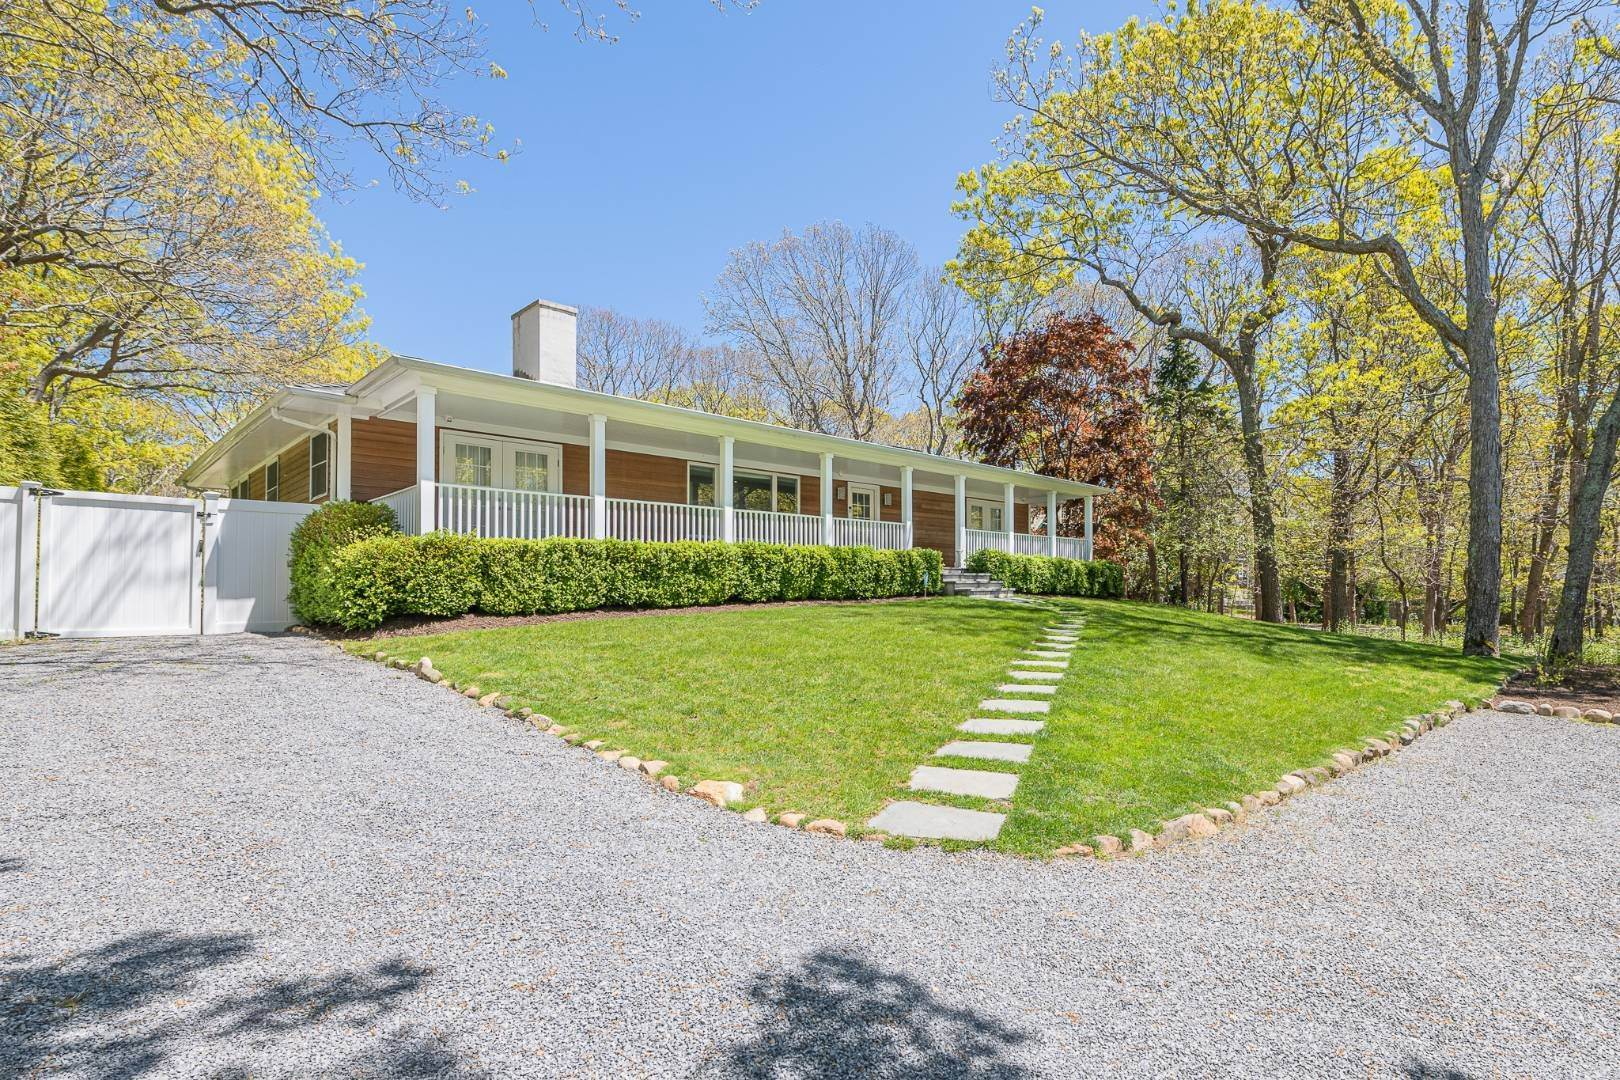 Single Family Home for Sale at East Hampton Ranch/Contemporary 104 Springy Banks Rd, East Hampton, NY 11937